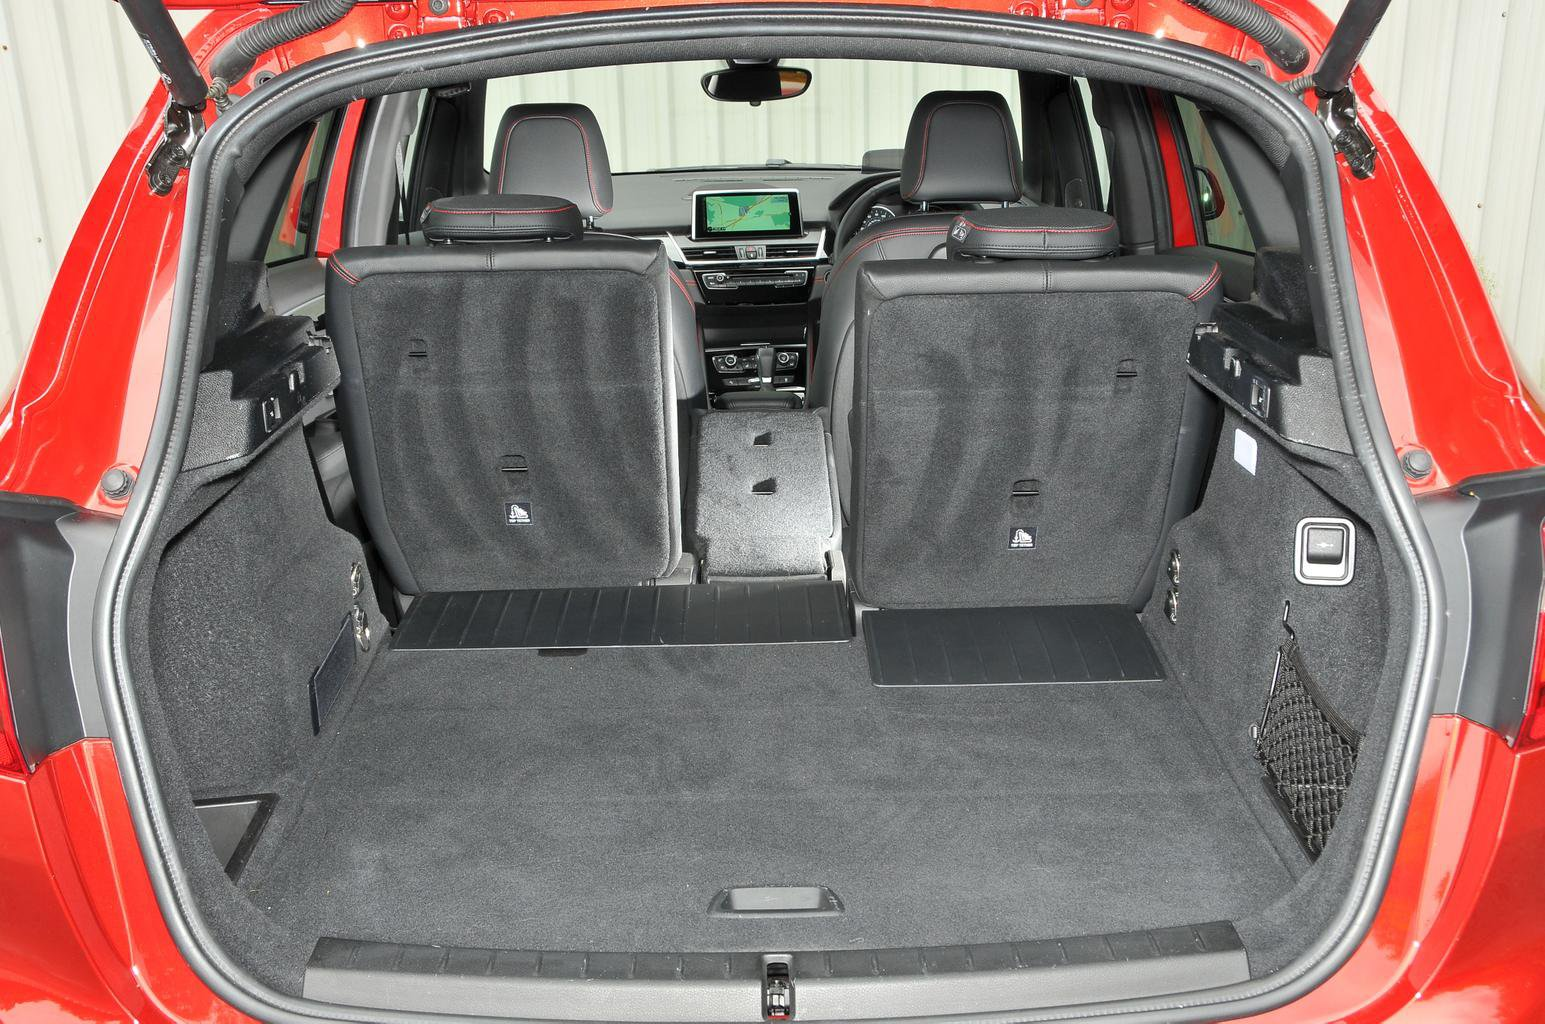 Used BMW 2-Series Active Tourer 2014-present